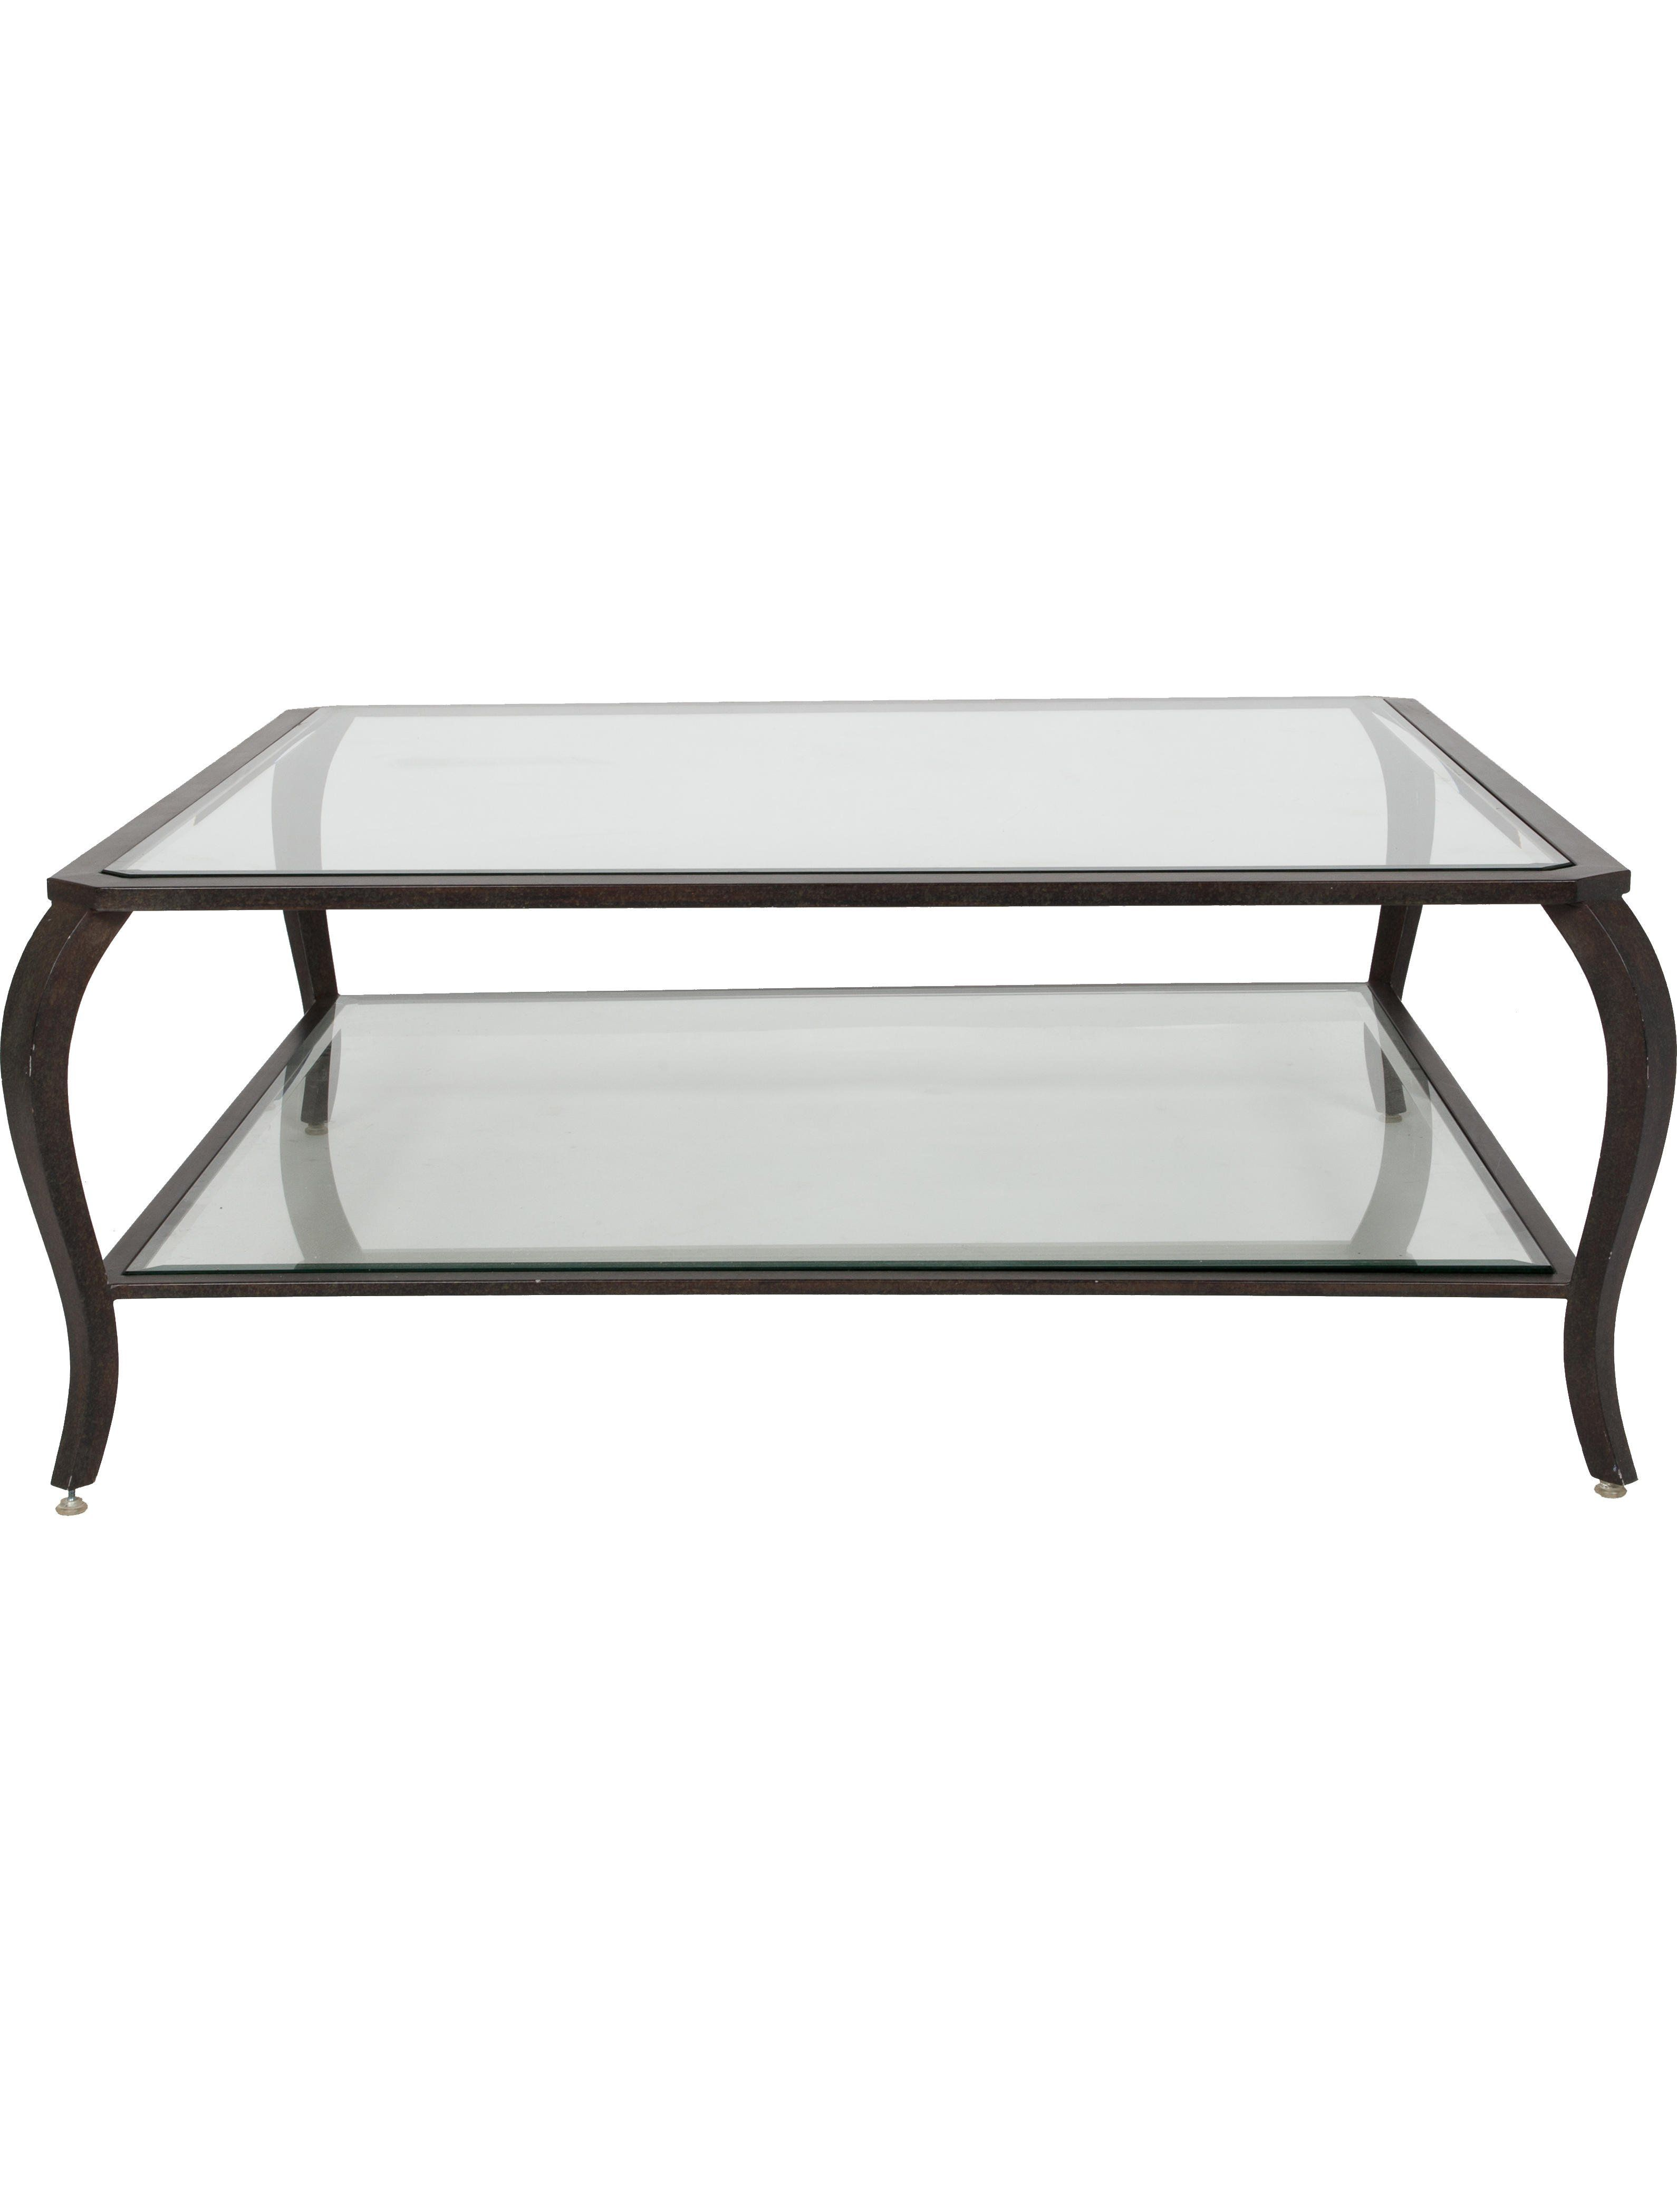 Black Metal And Clear Tiered Glass Coffee Table With Beveled Glass Panel At Center And Curved Legs For Our Oversize Art Coffee Table Home Coffee Tables Table [ 4195 x 3180 Pixel ]